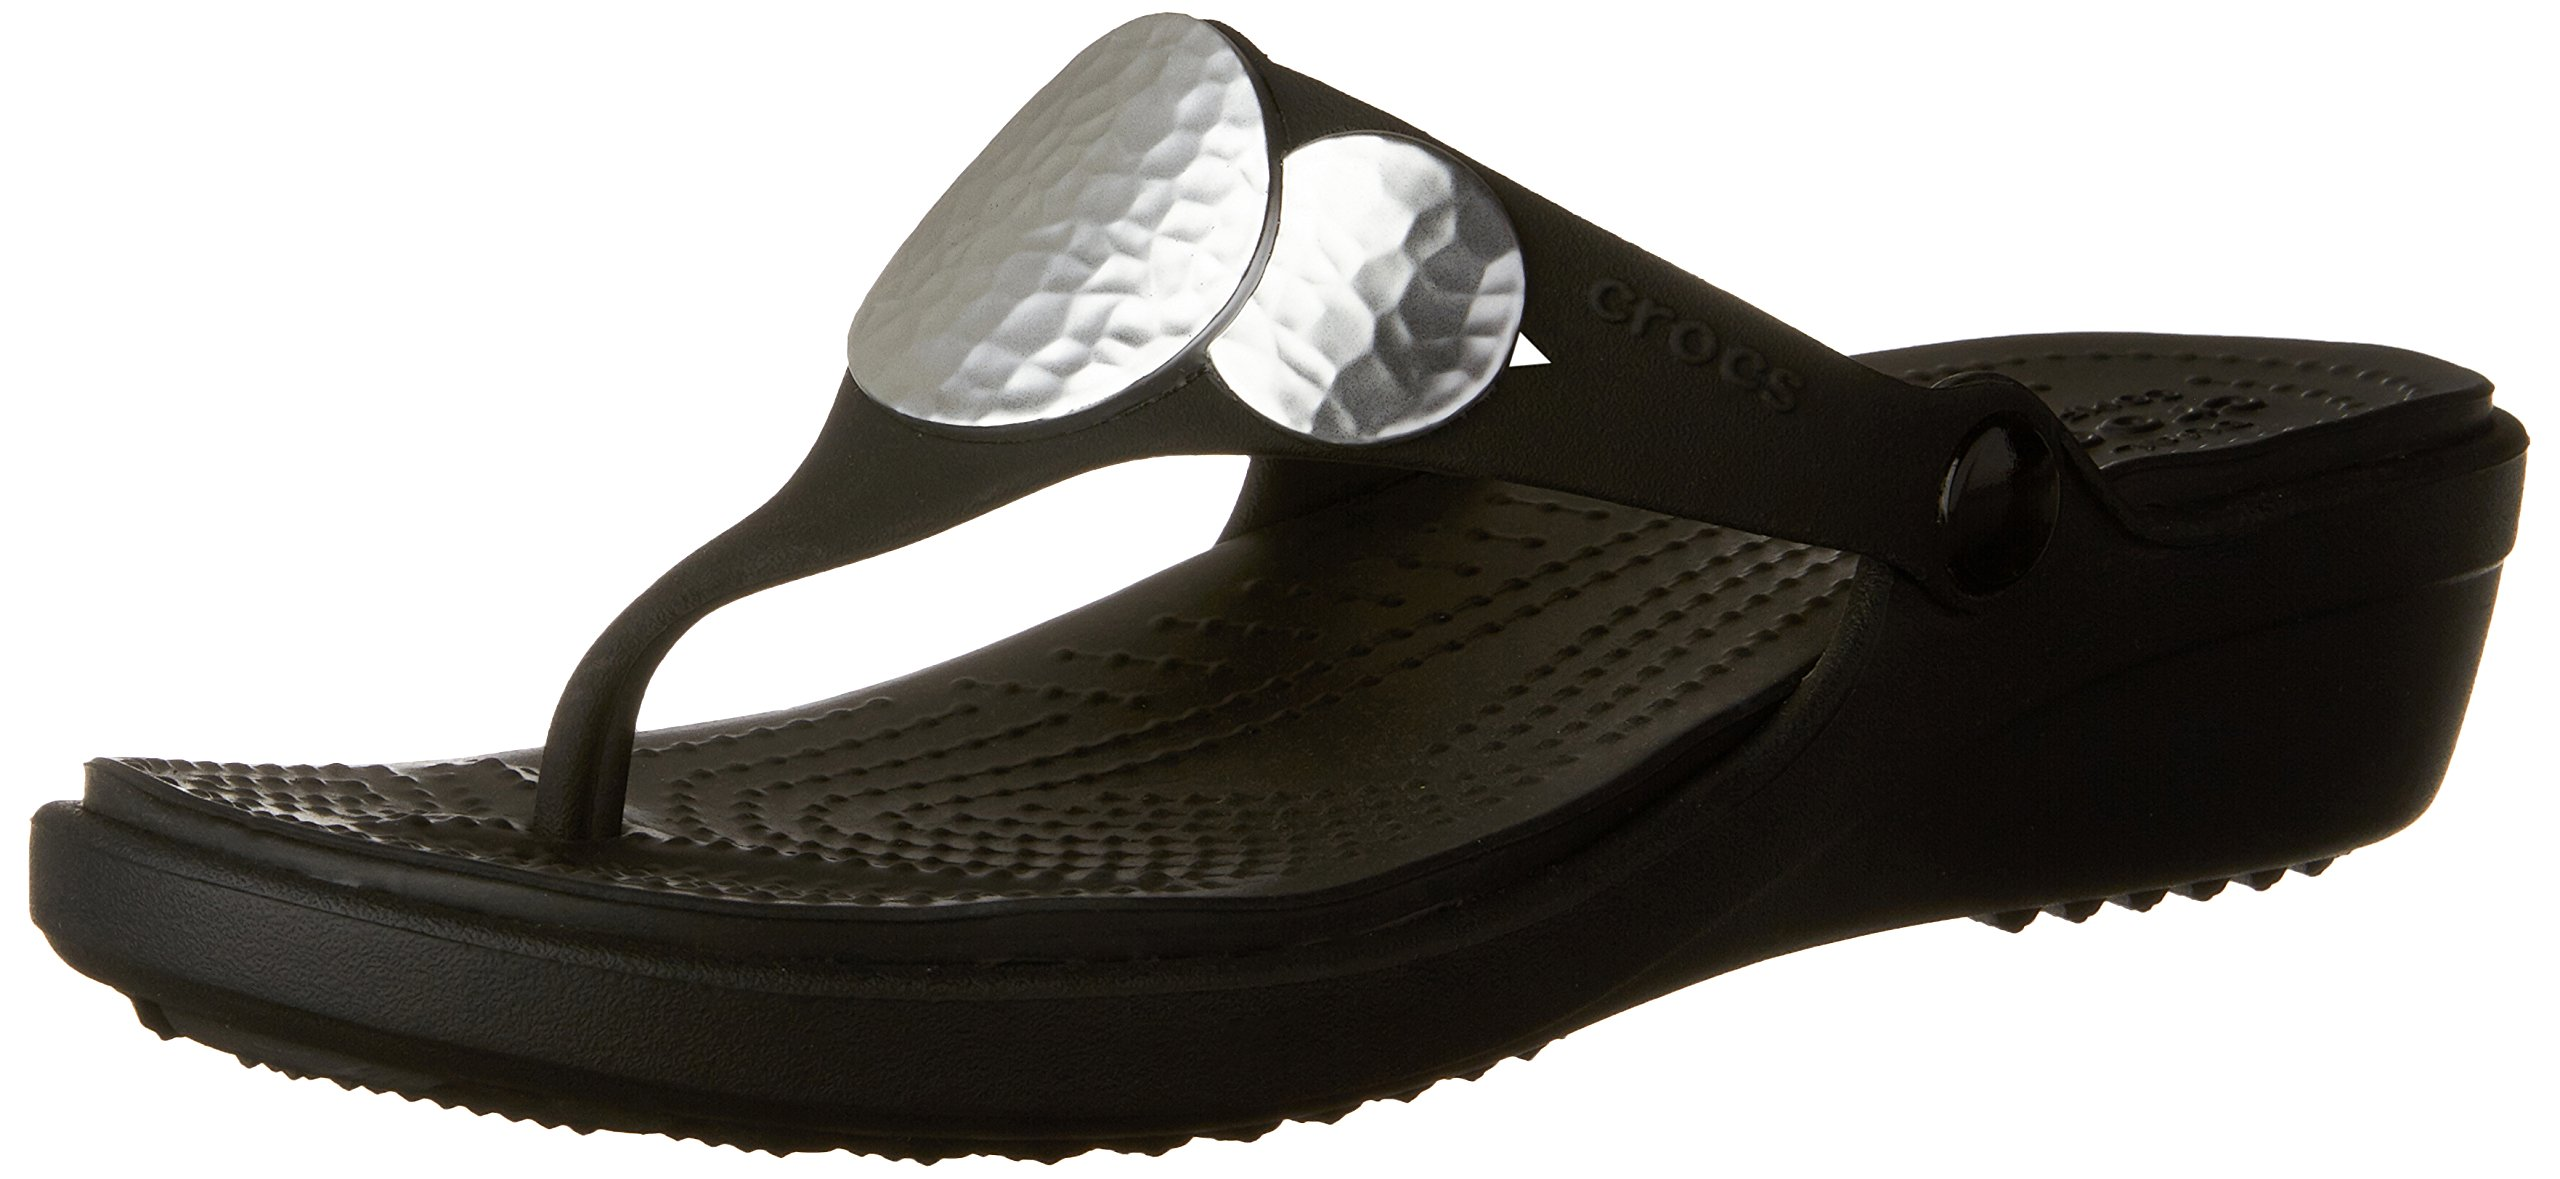 crocs Women's Sanrah Embellished Flip Wedge Sandal, Black/Silver Metallic, 8 M US